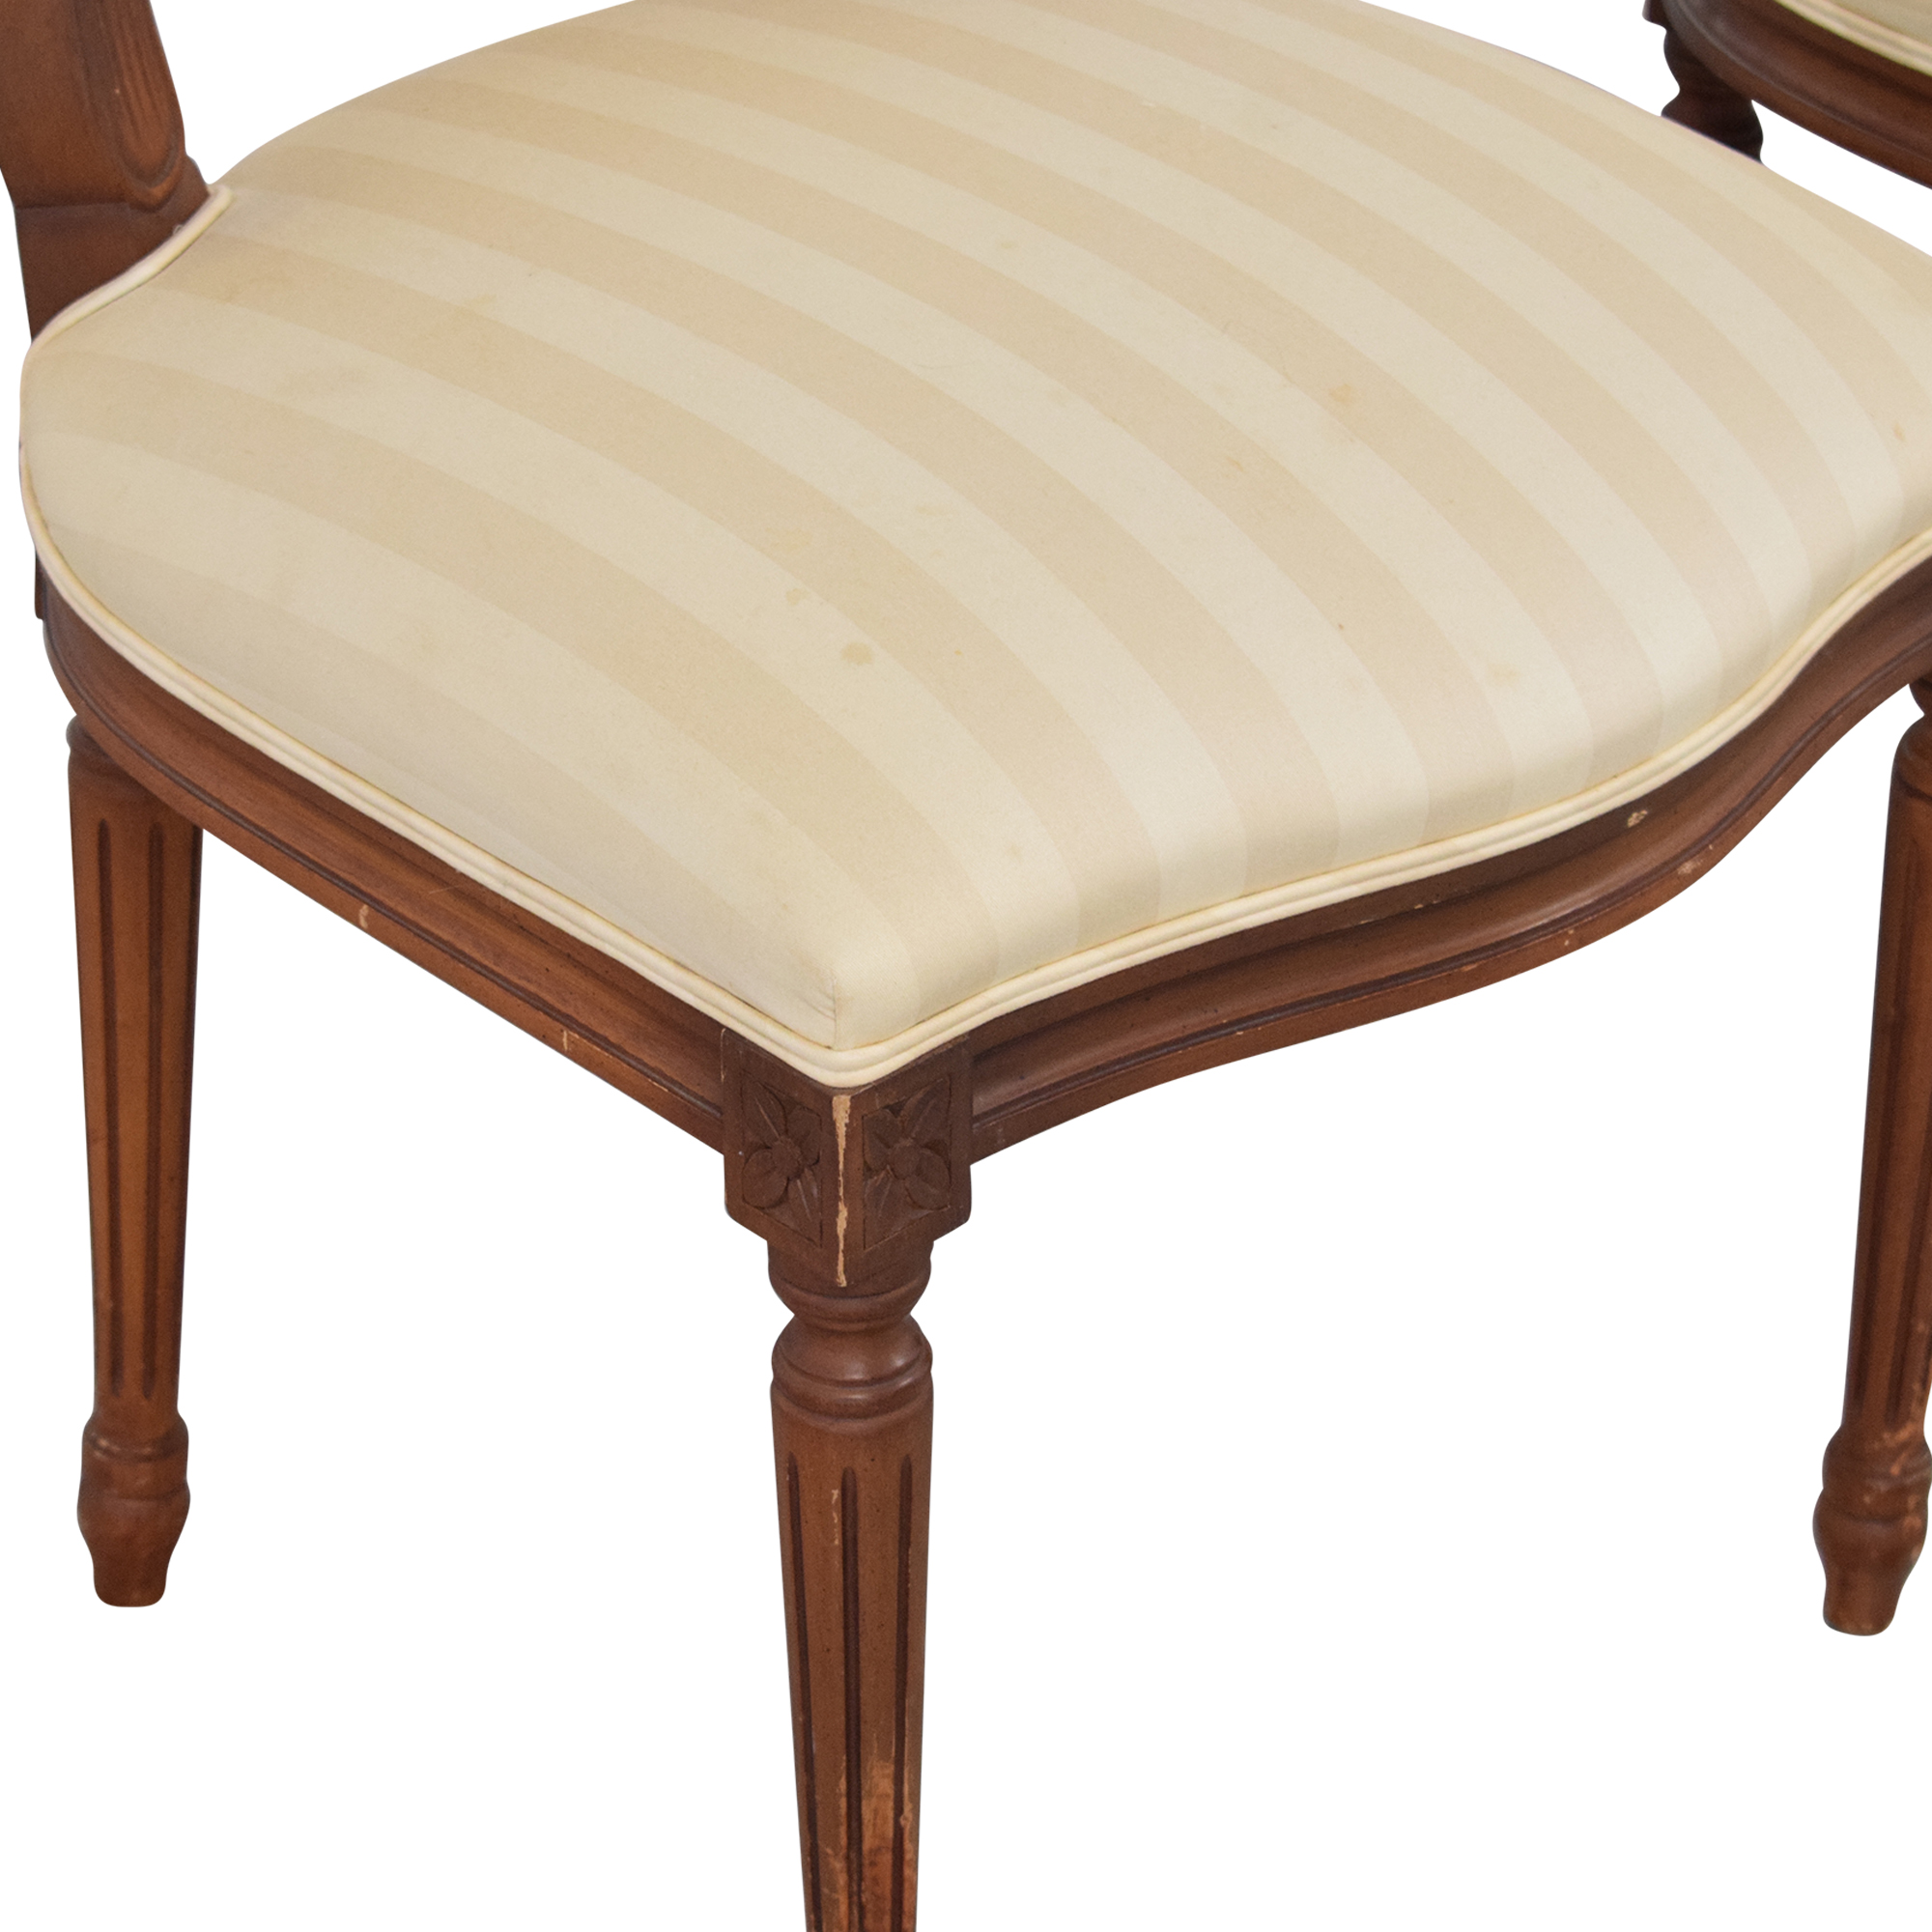 French Style Dining Chairs with Slip Covers dimensions